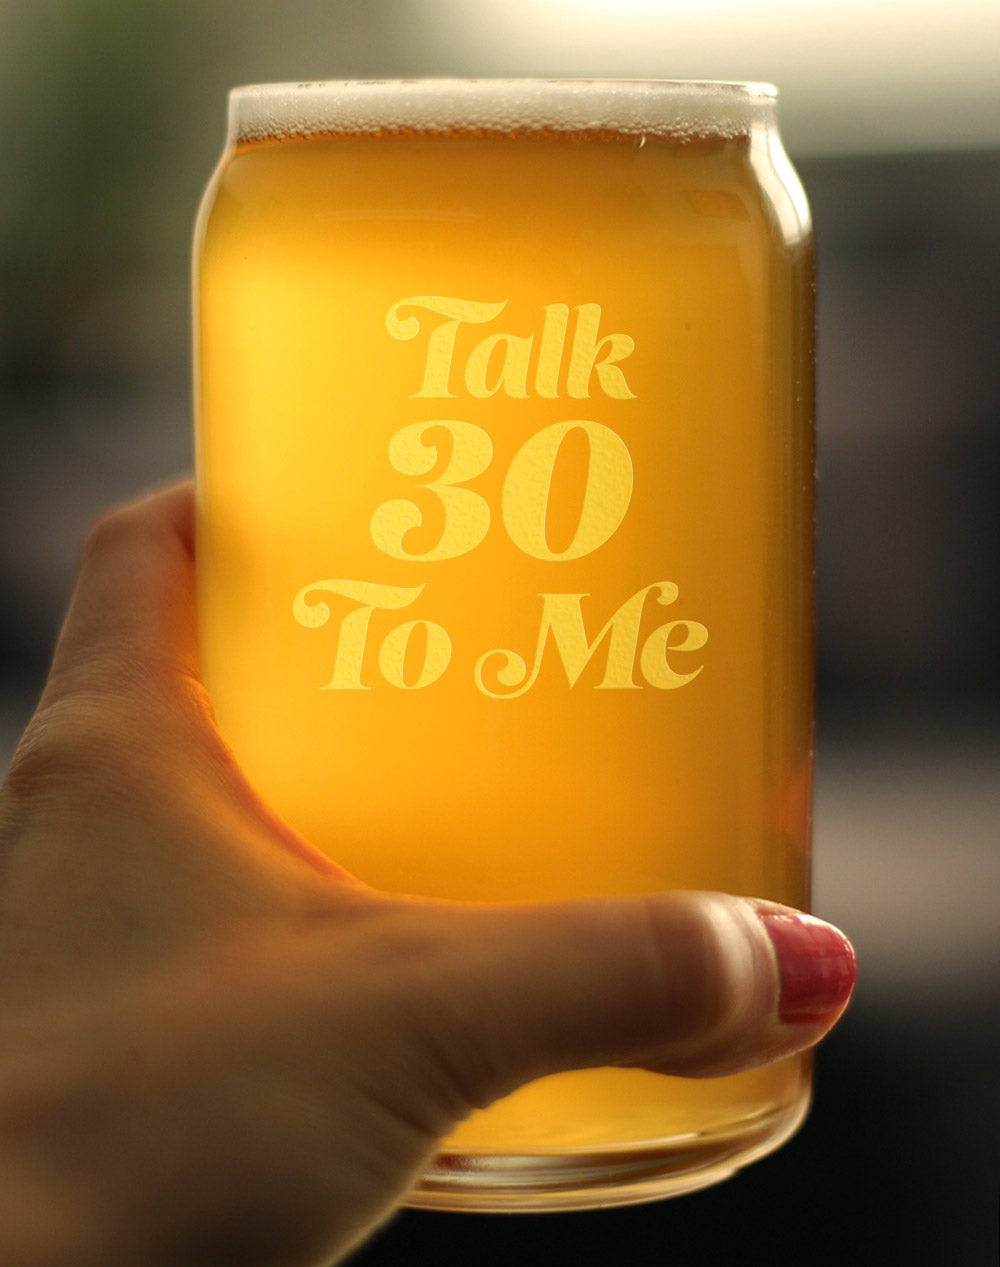 Talk 30 To Me - 16 Ounce Beer Can Pint Glass